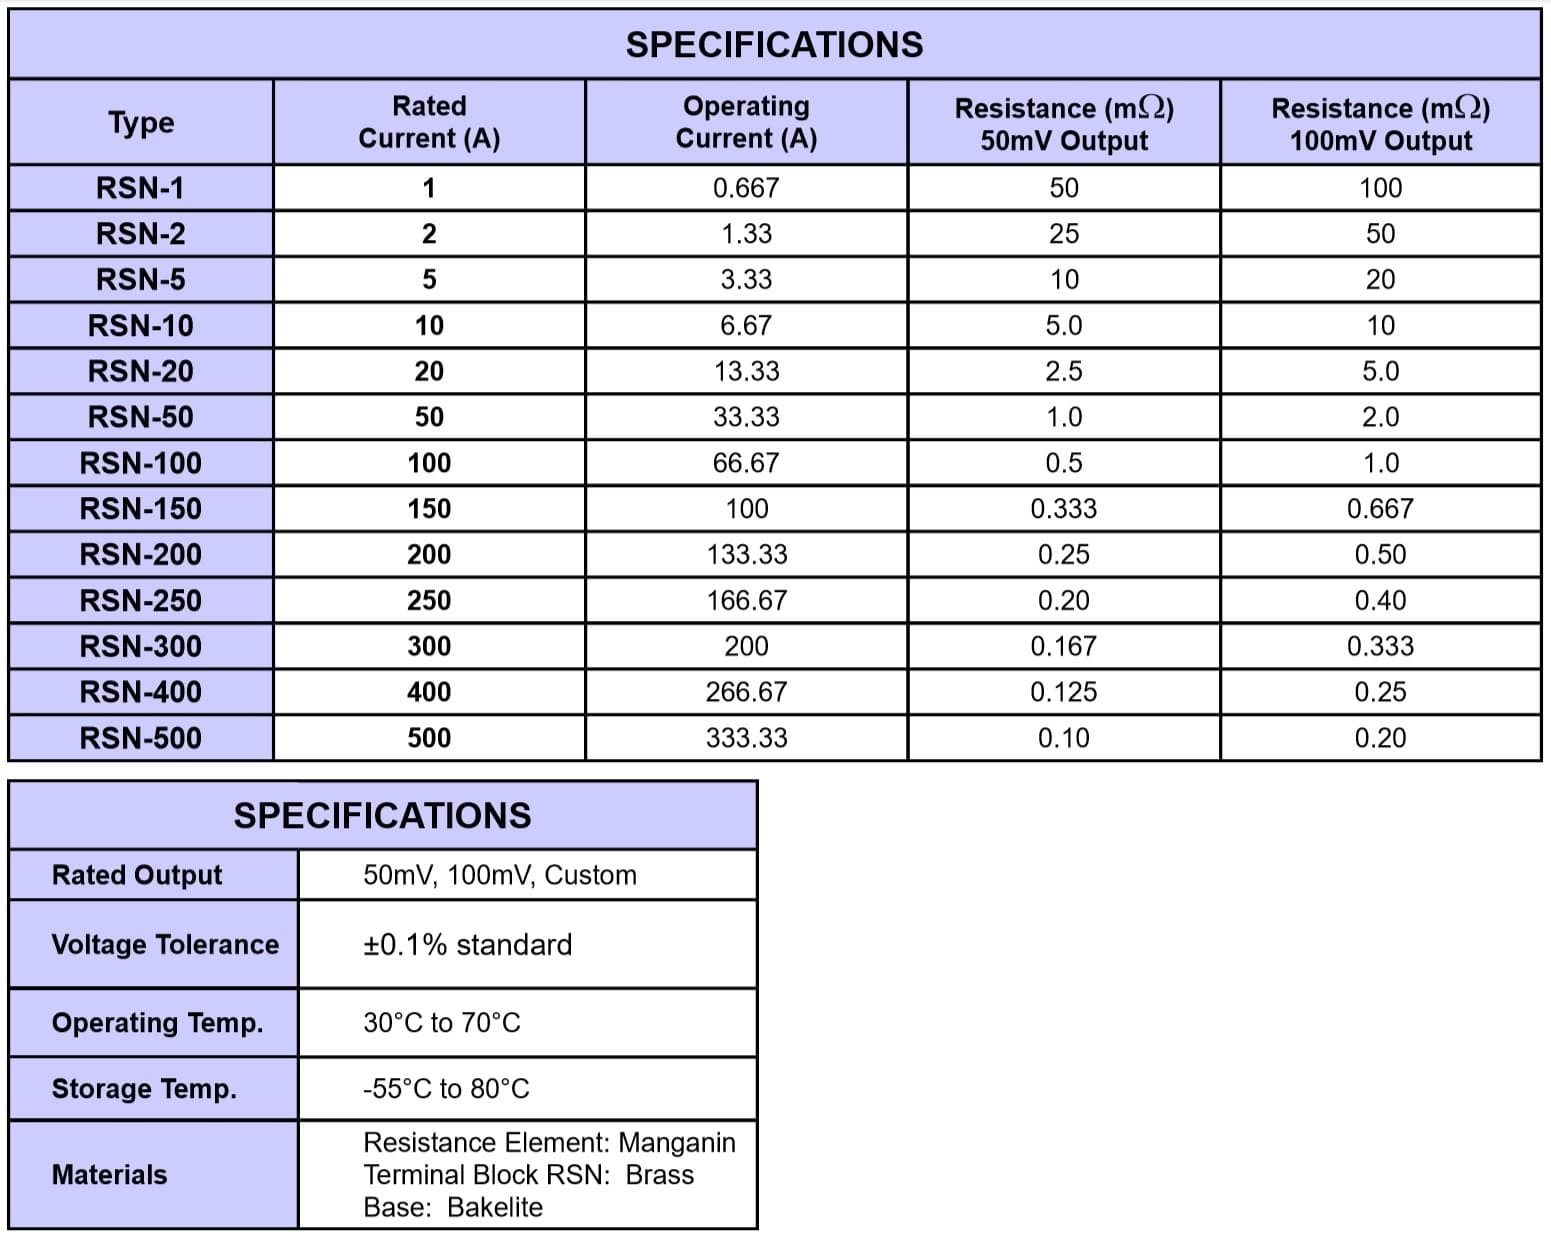 Riedon RSN Specifications